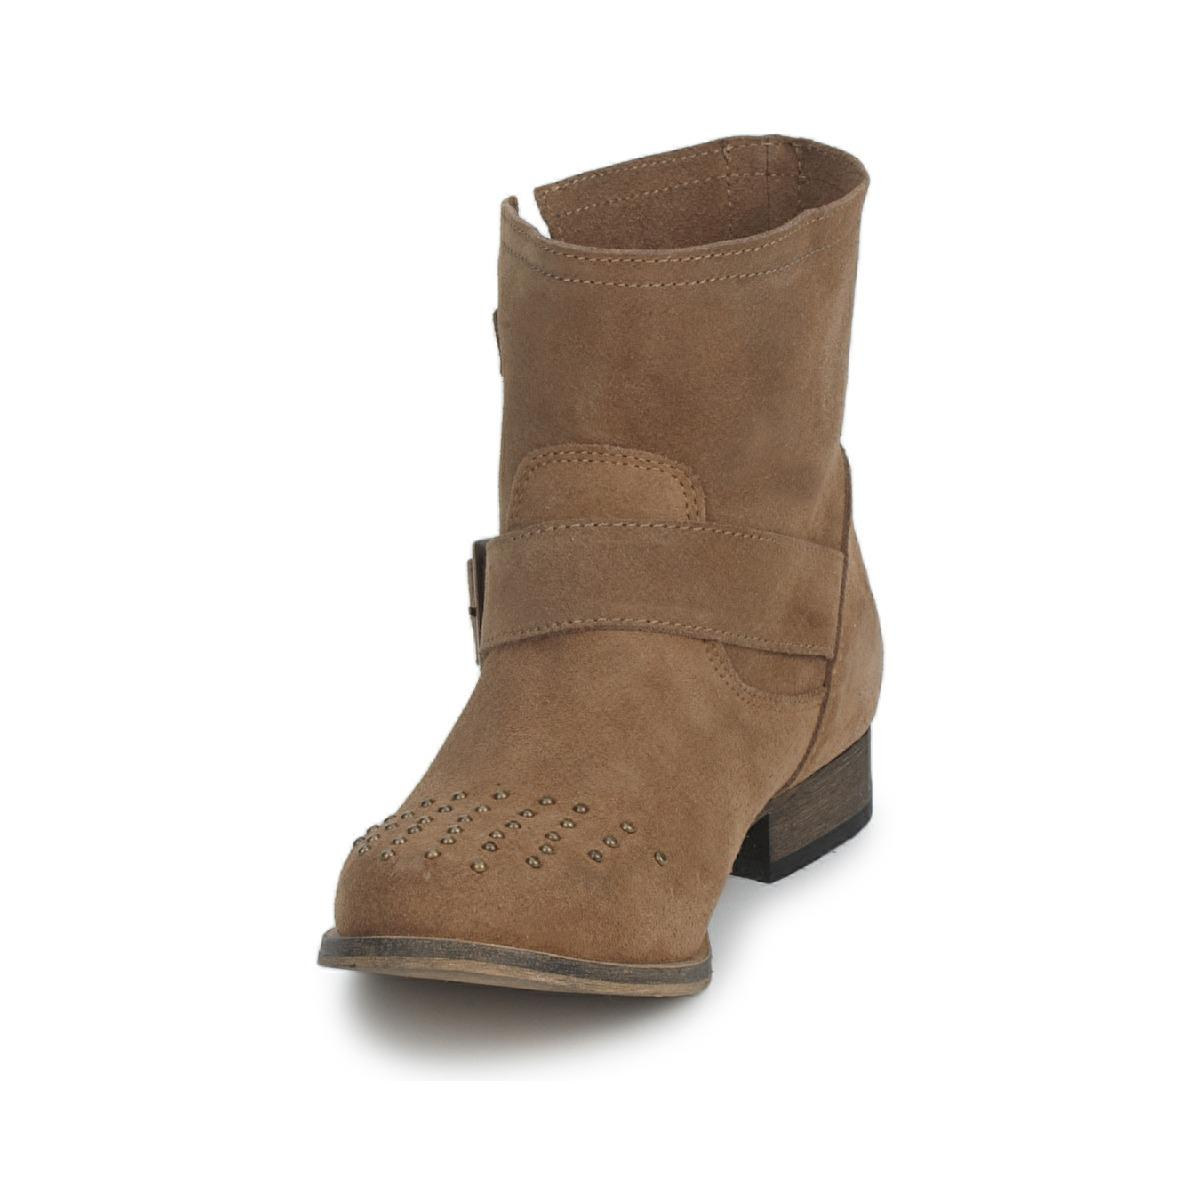 Betty London Leather Artune Mid Boots in Brown